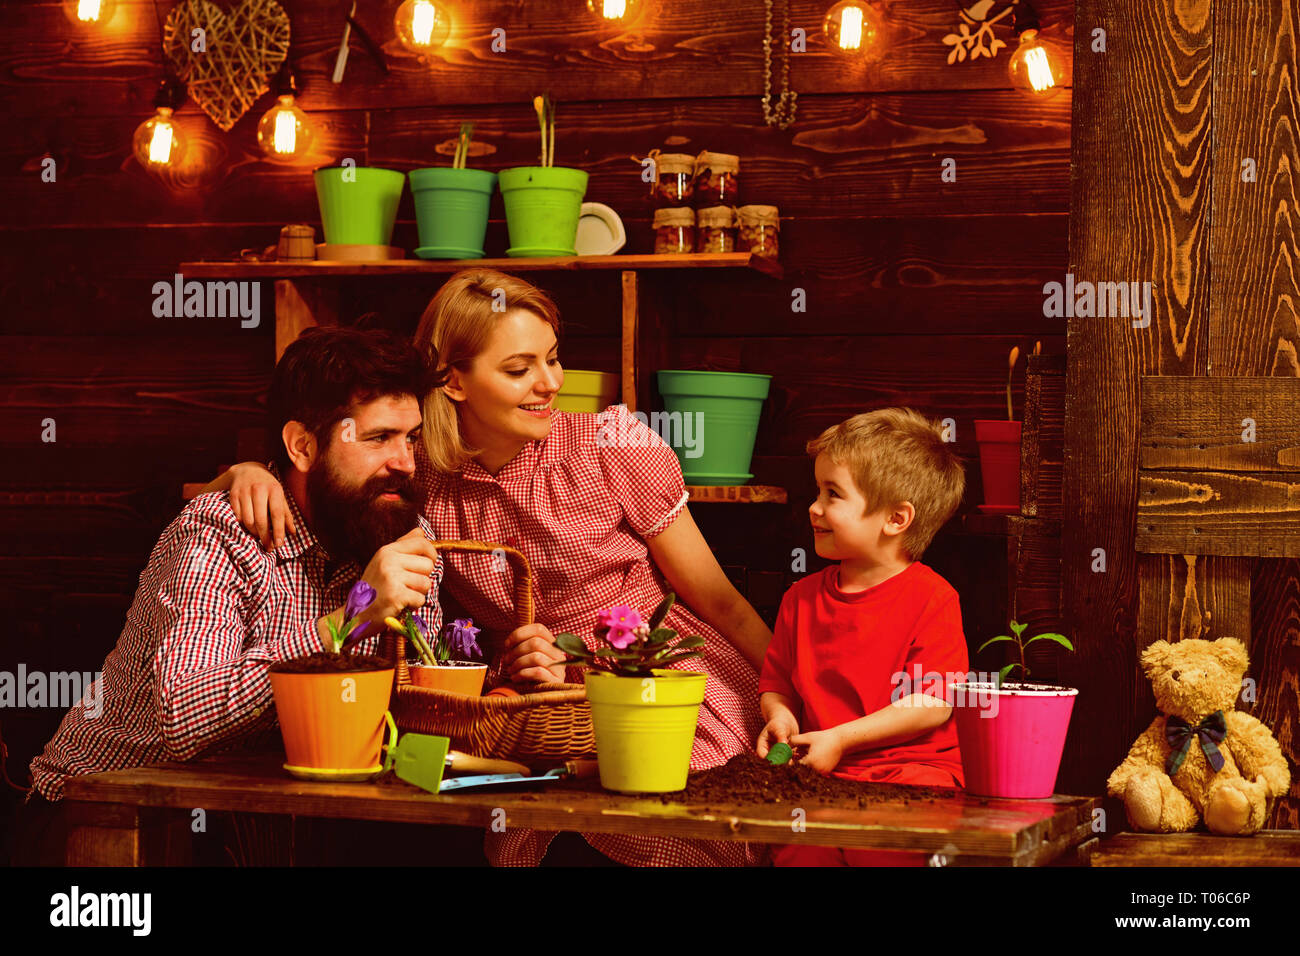 Decor concept. Little boy with woman and man planting flower in new pot decor. Home decor. Natural eco decor - Stock Image